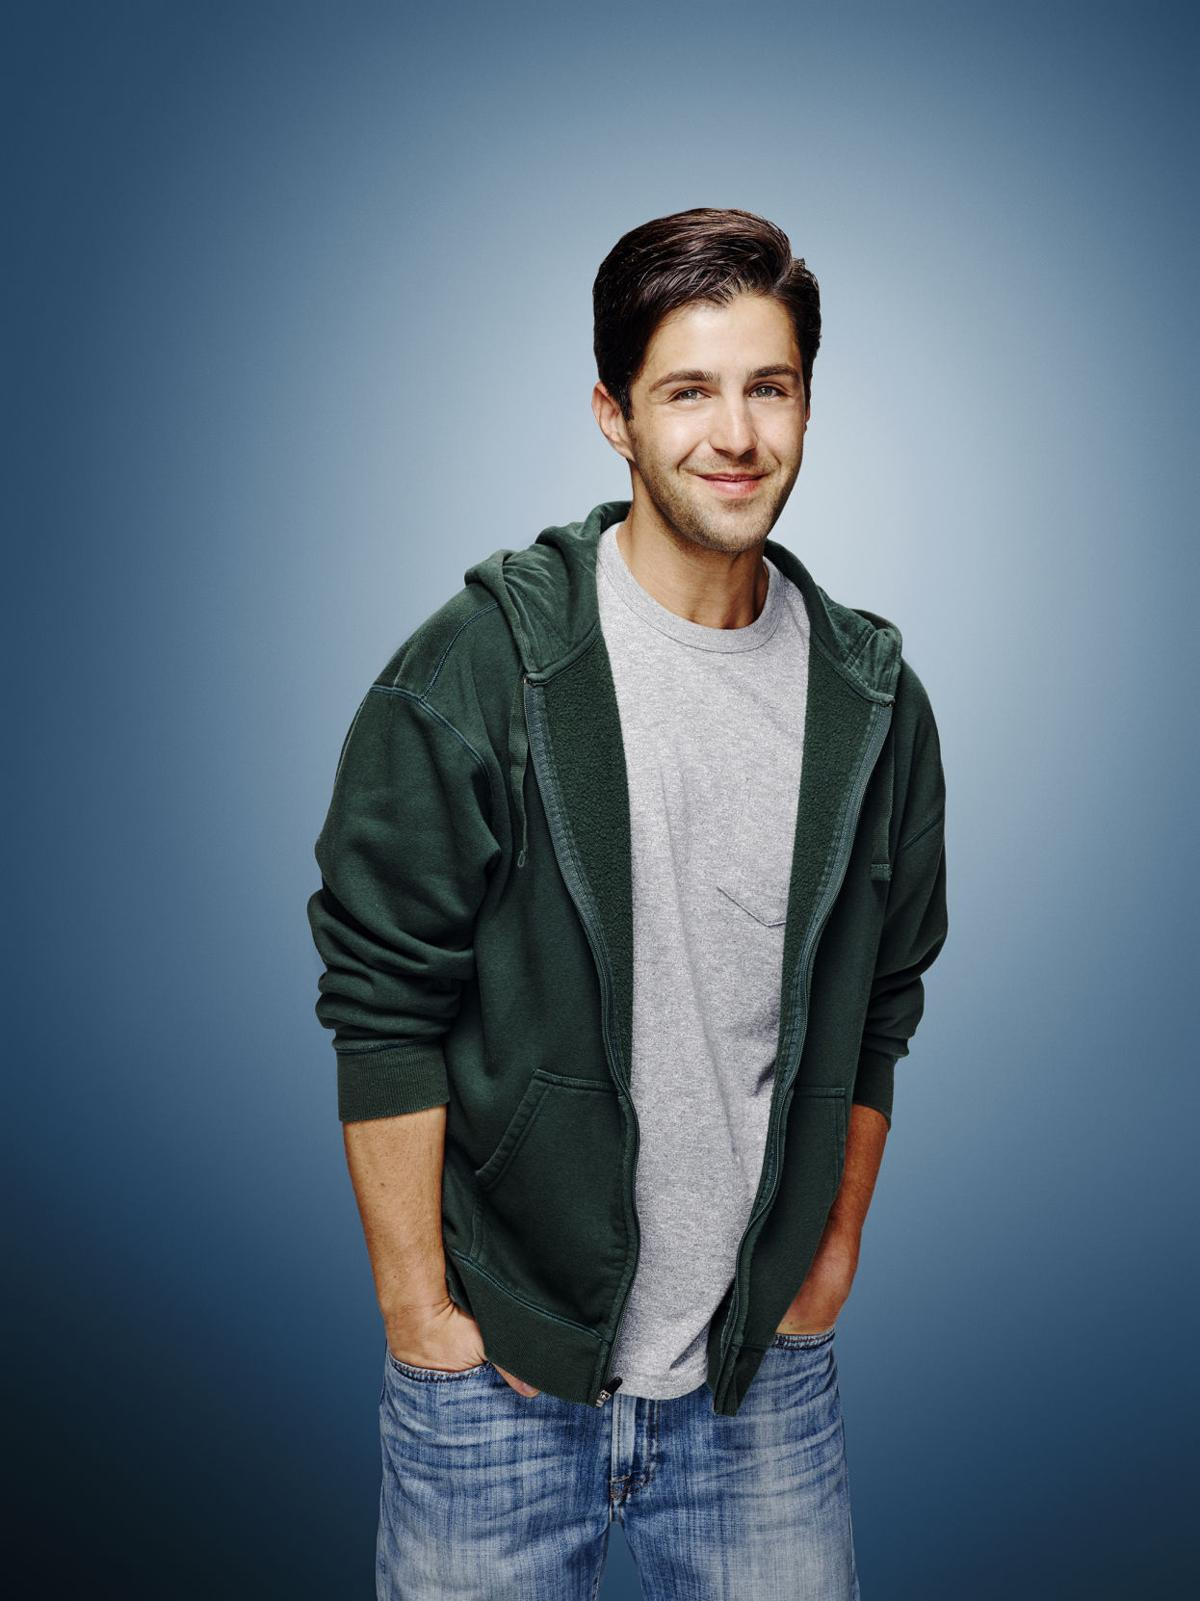 josh peck finds postnickelodeon home on grandfathered